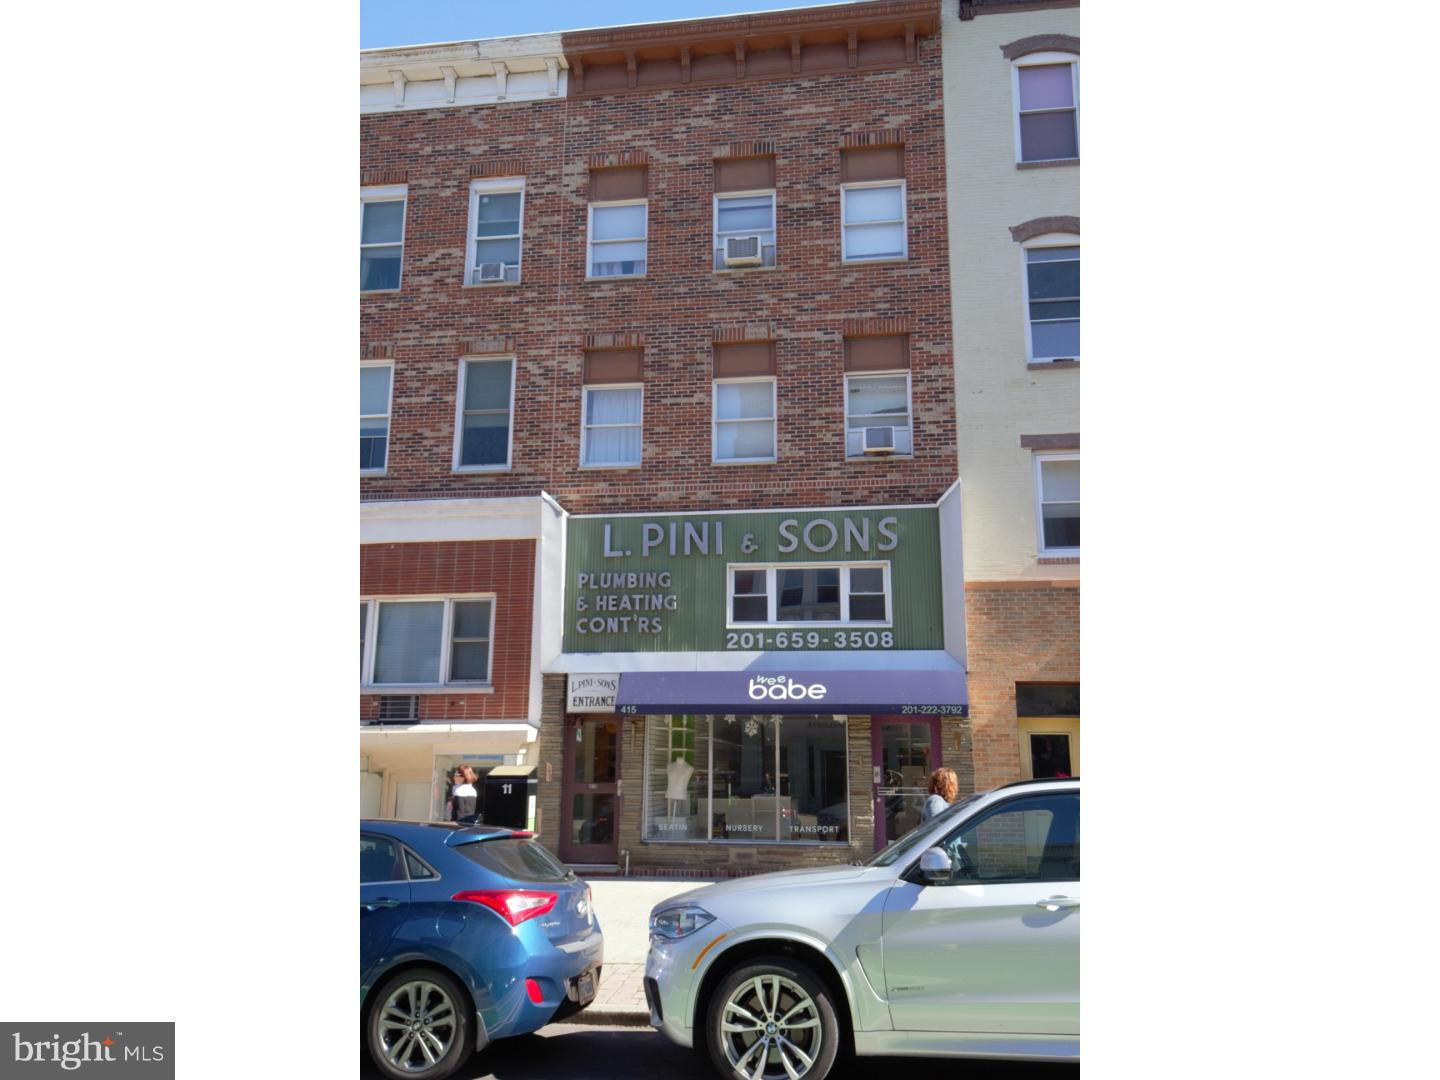 415 WASHINGTON STREET, HOBOKEN, NJ 07030